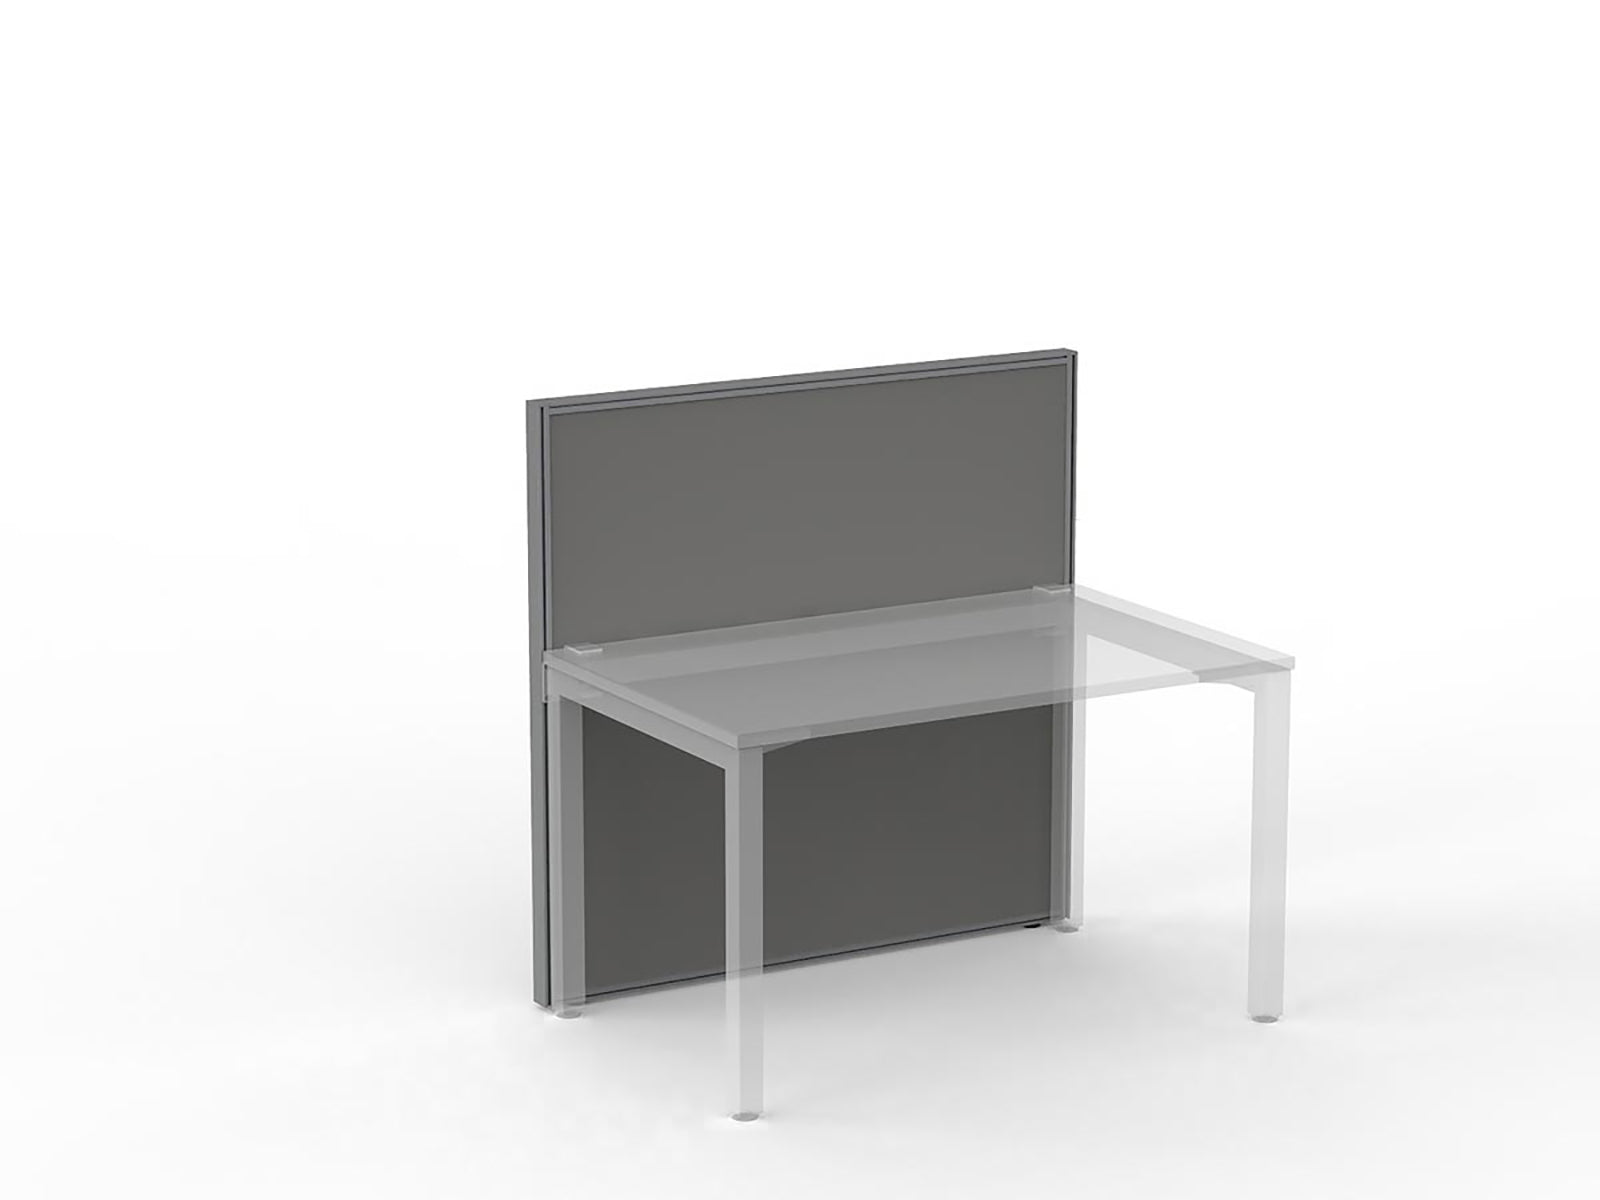 Studio50 Silver Frame Screen 1.2 x 1.2m - Workspace Furniture Office Partition